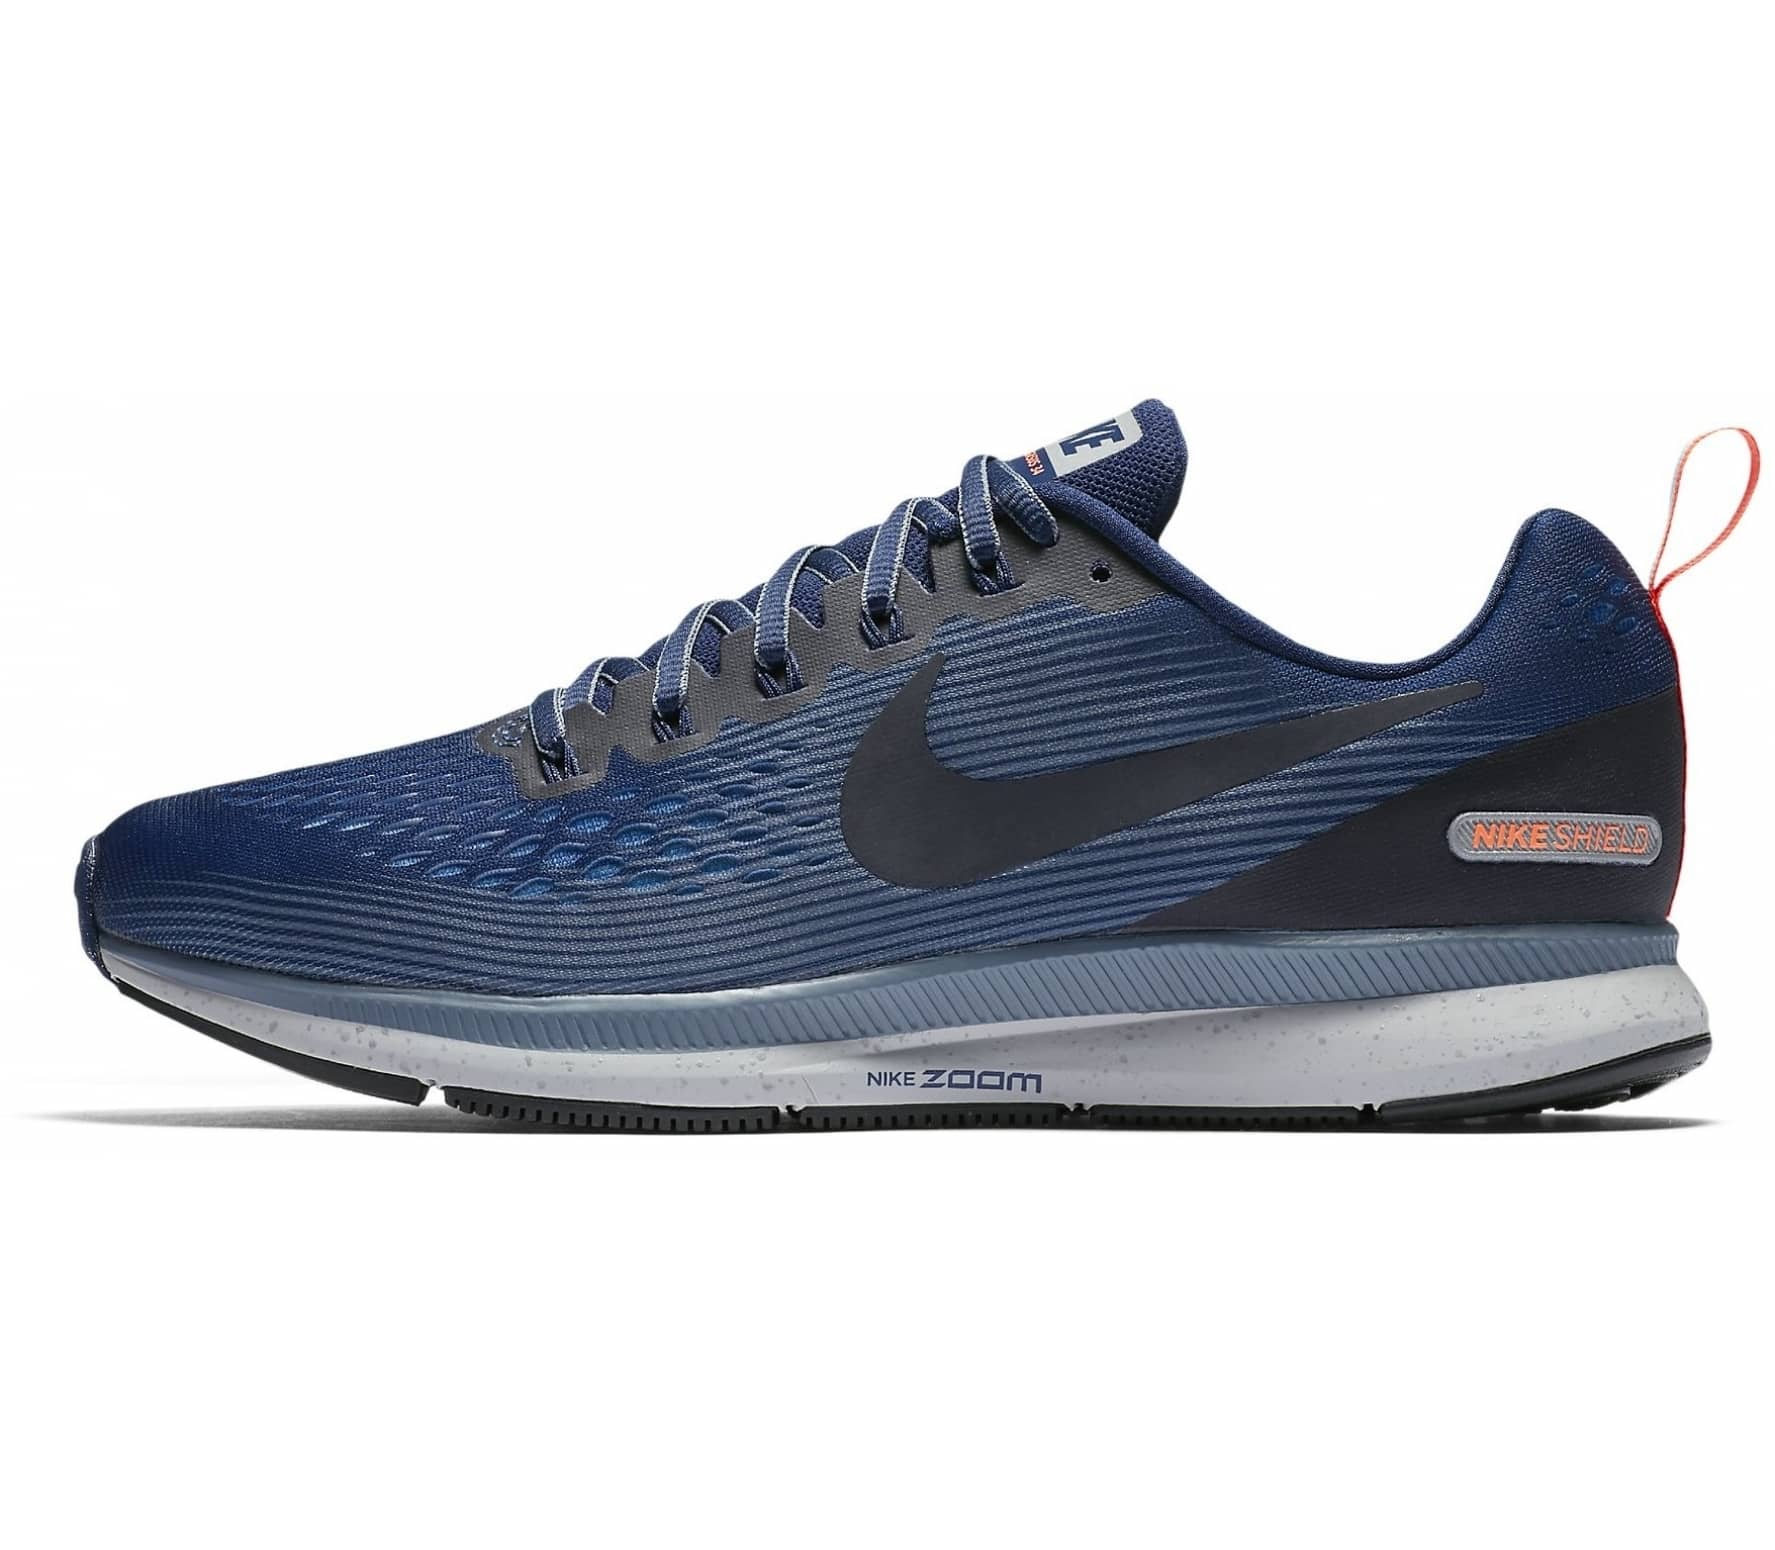 4b7e0fcc6ae25 Nike - Air Zoom Pegasus 34 Shield men s running shoes (blue) - buy ...